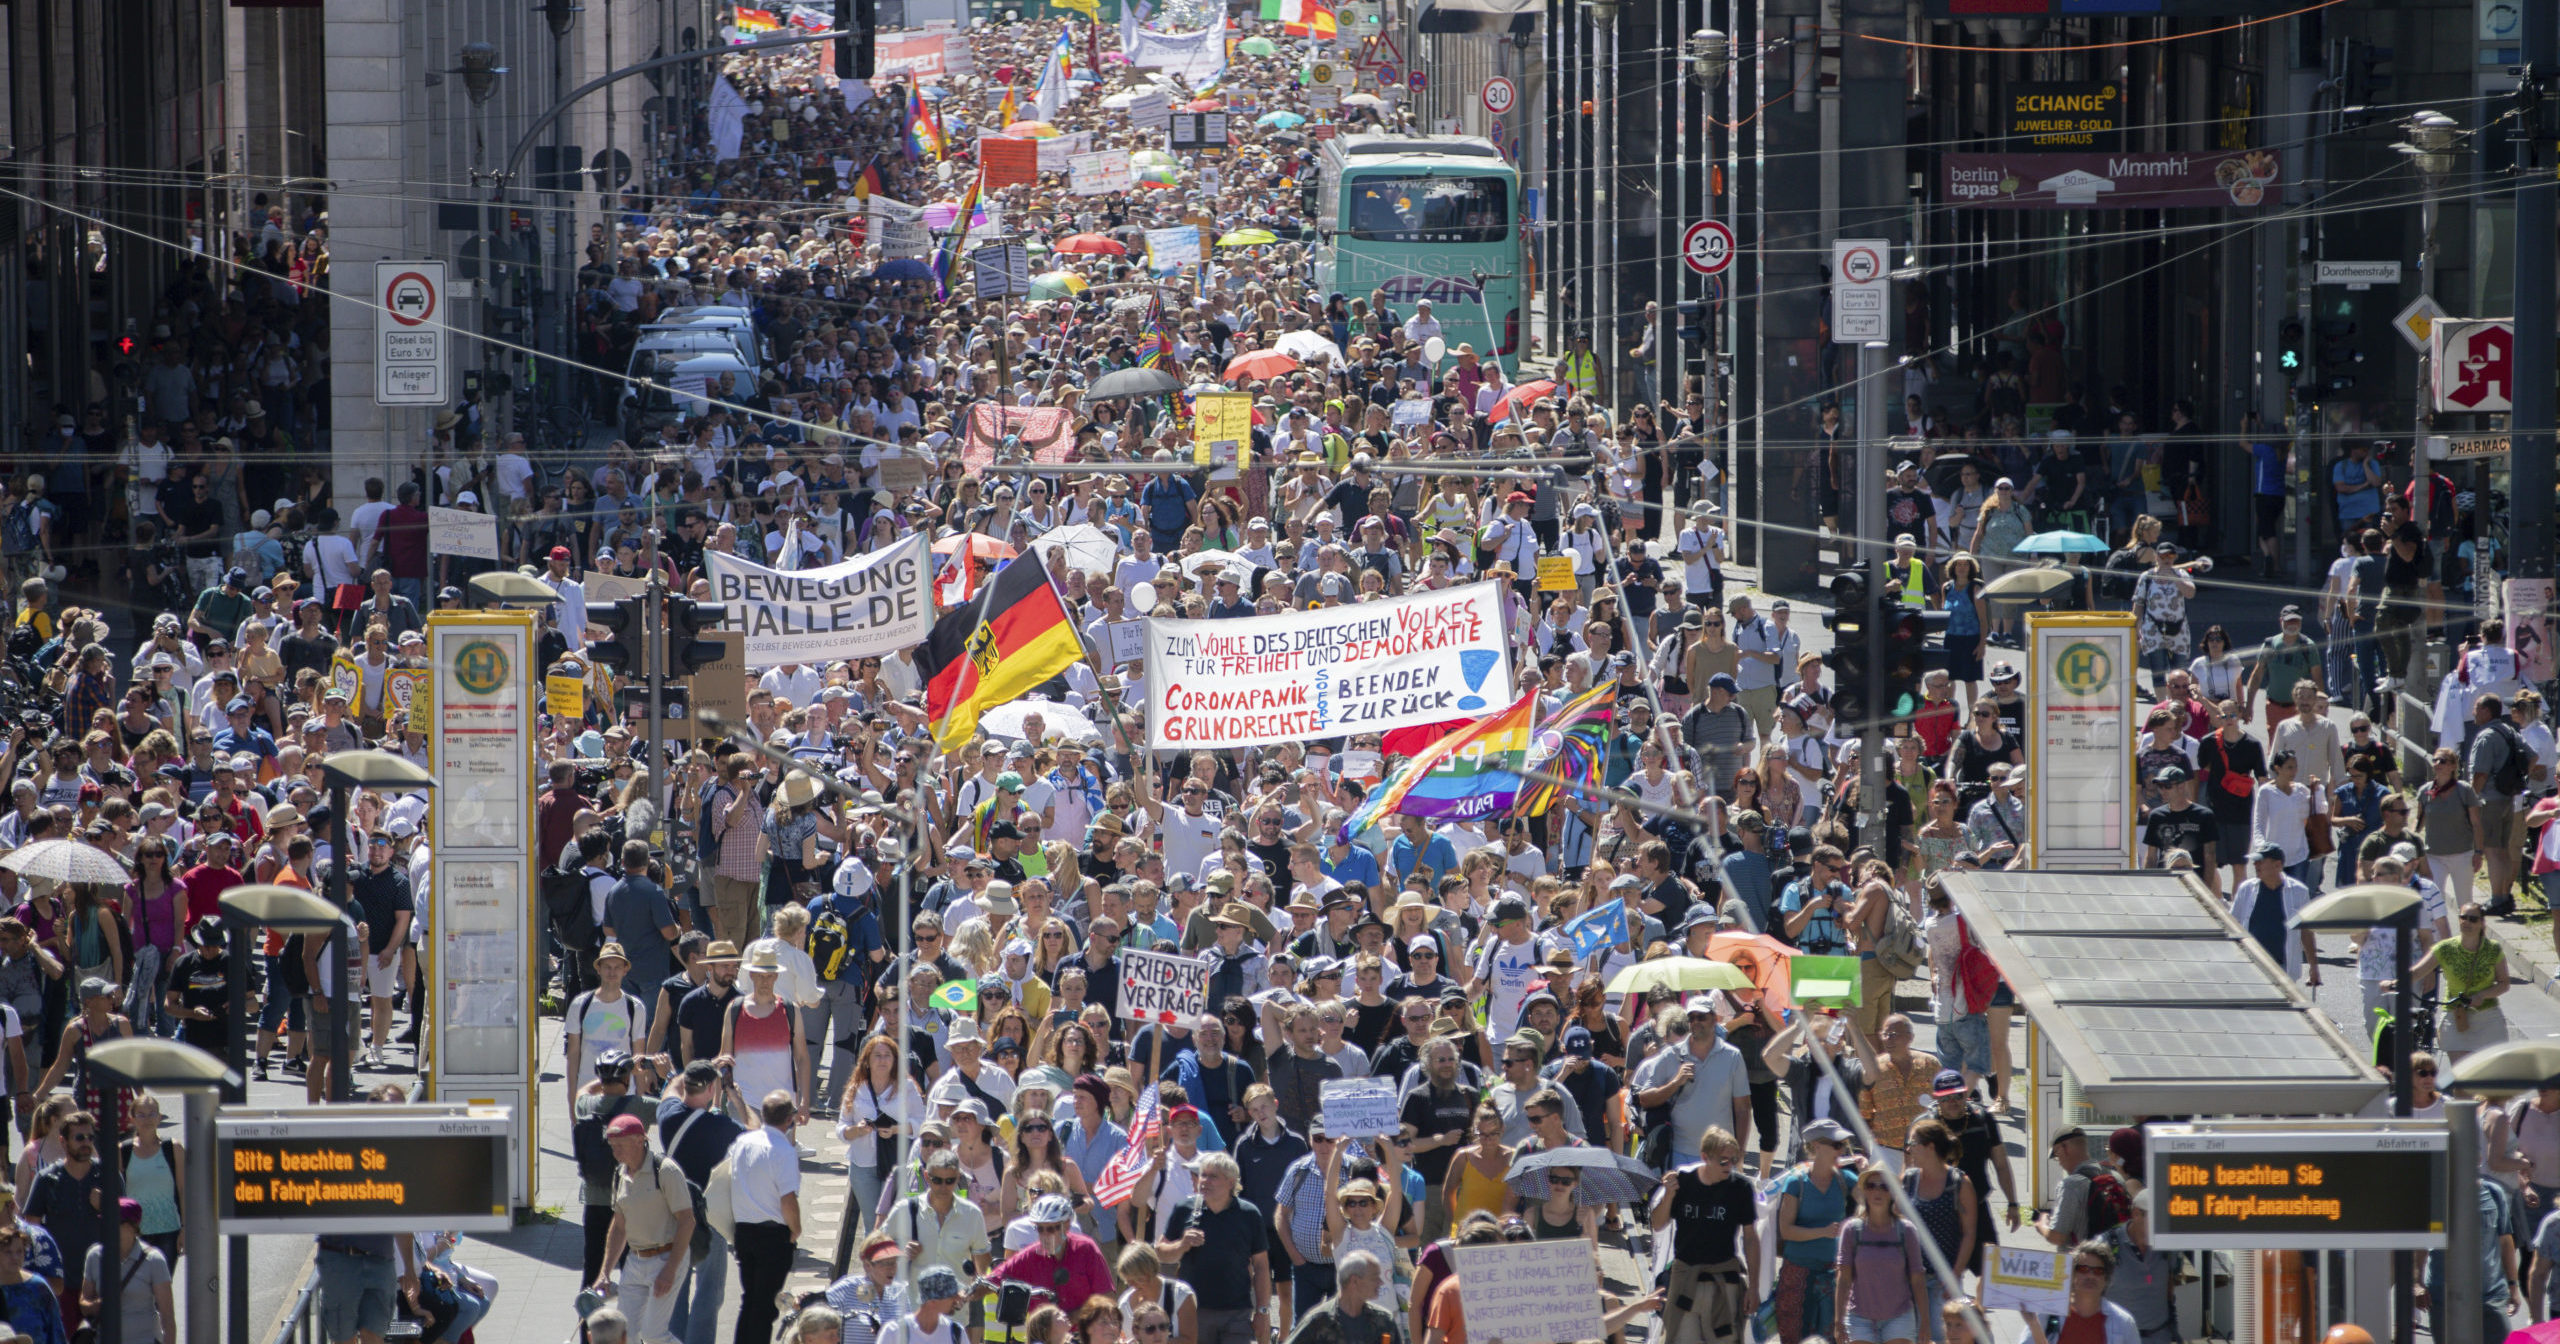 Thousands march during the demonstration against coronavirus restrictions in Berlin, Germany, on Aug. 1, 2020.